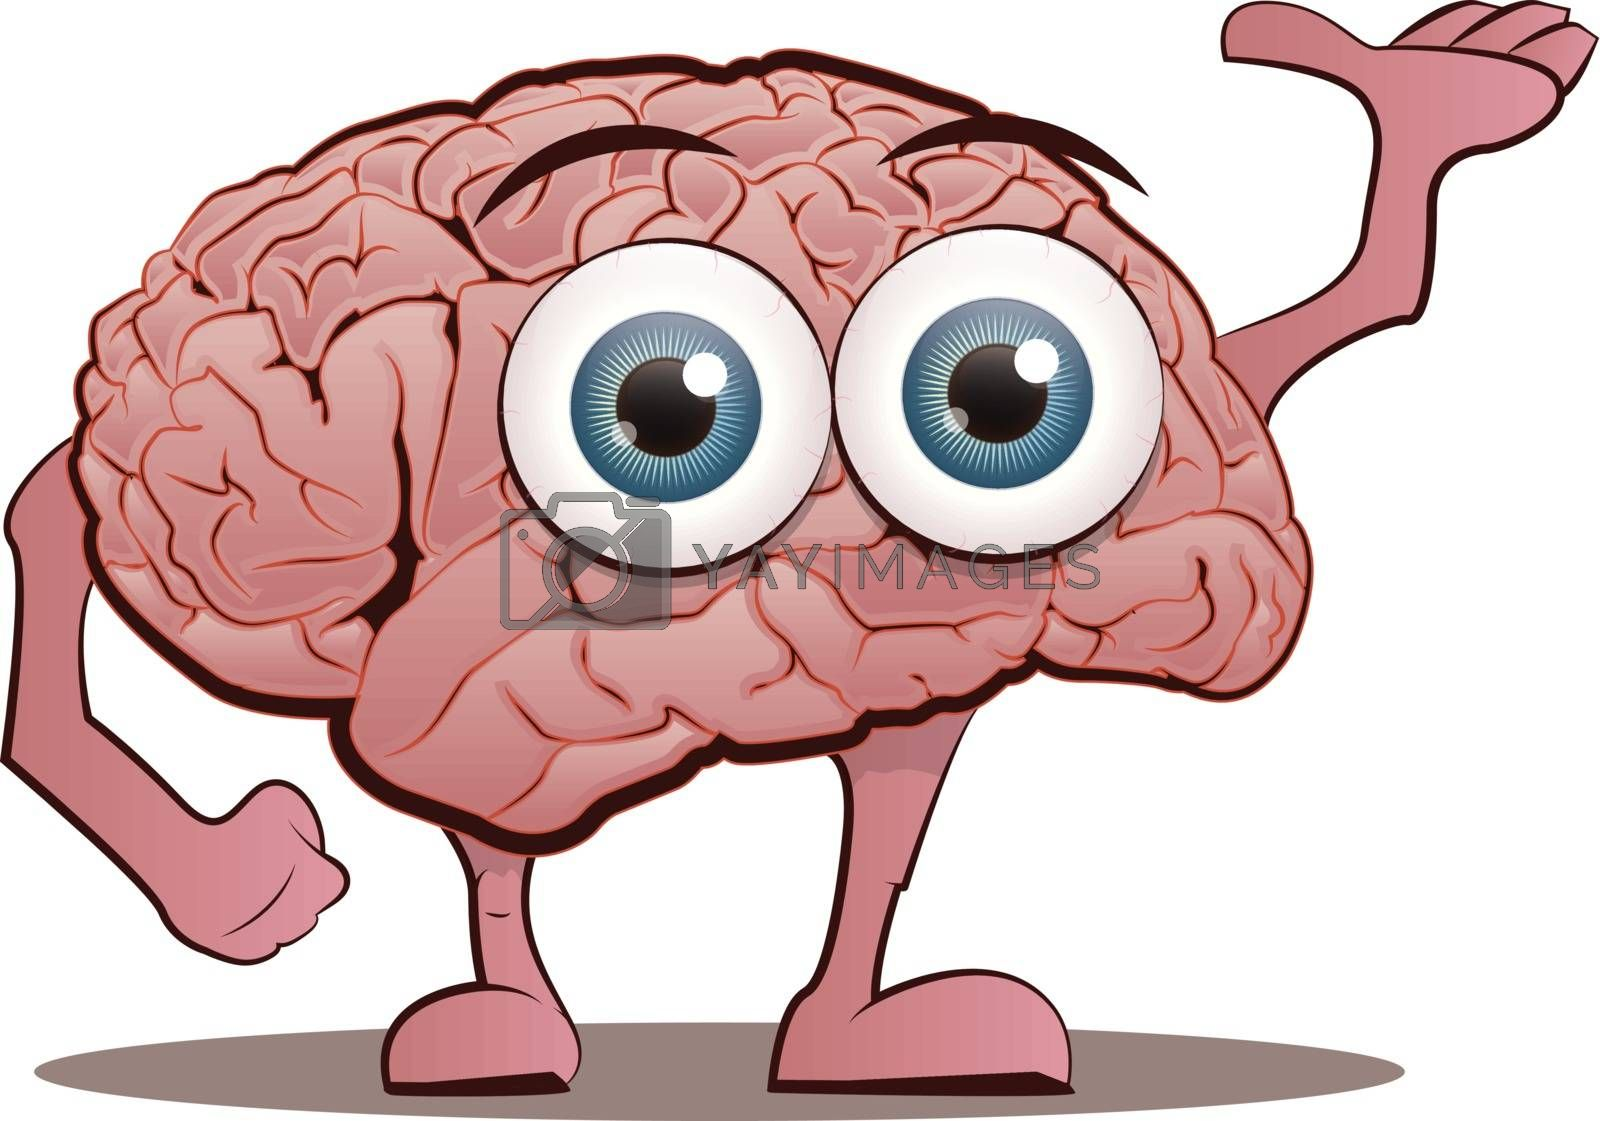 Royalty free image of Brain Character by graphicgeoff